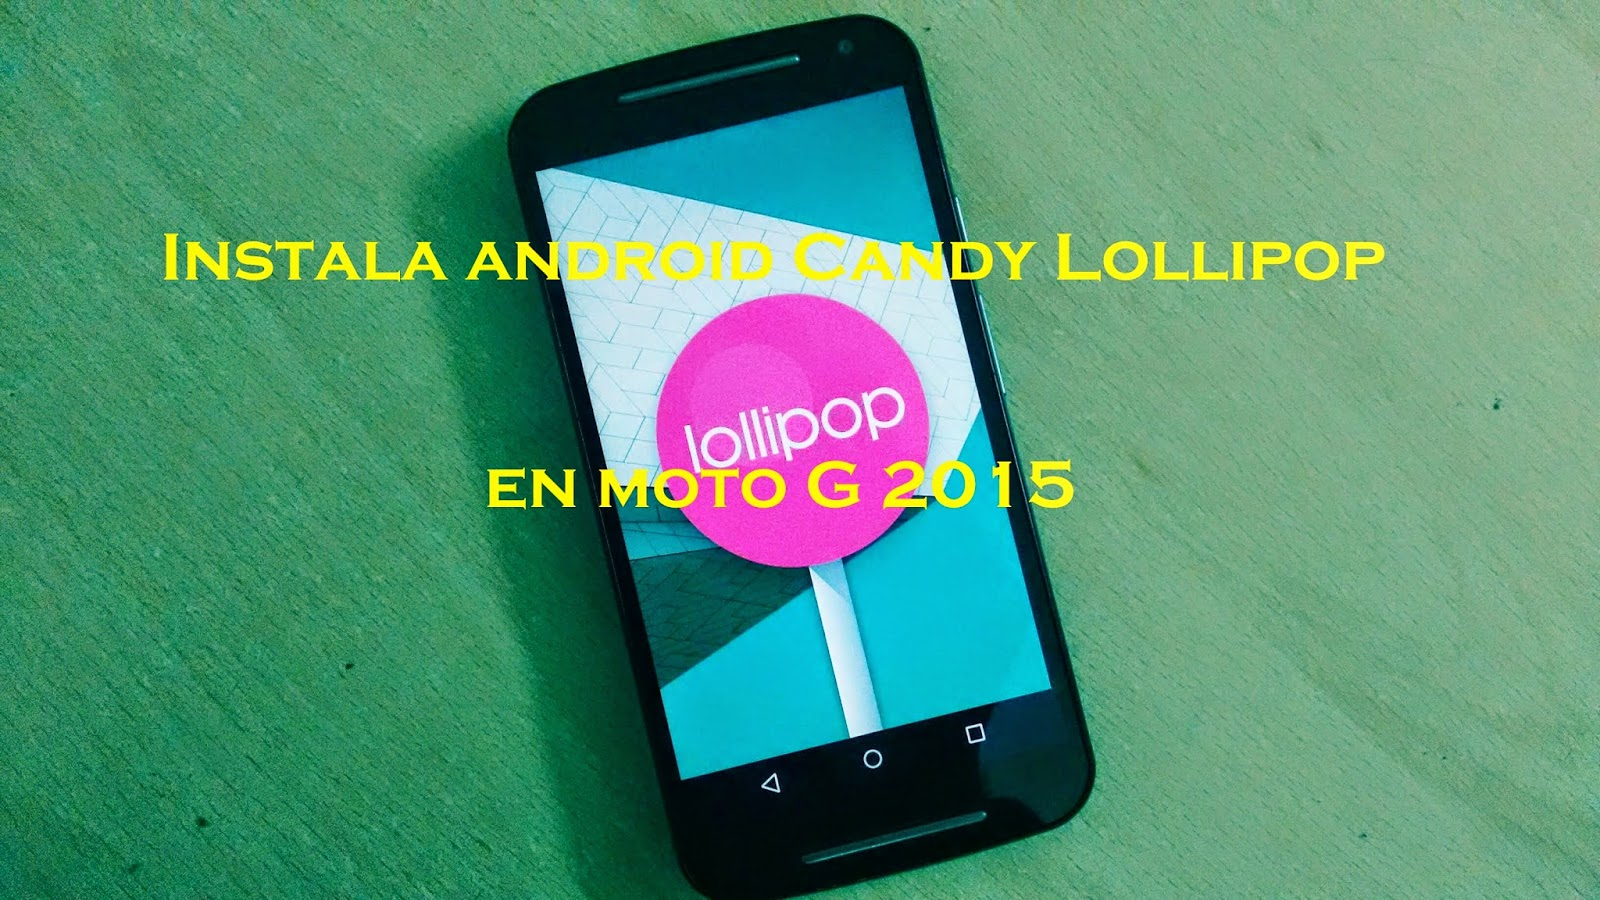 Android Candy Lollipop 5.1 para Moto G 2015